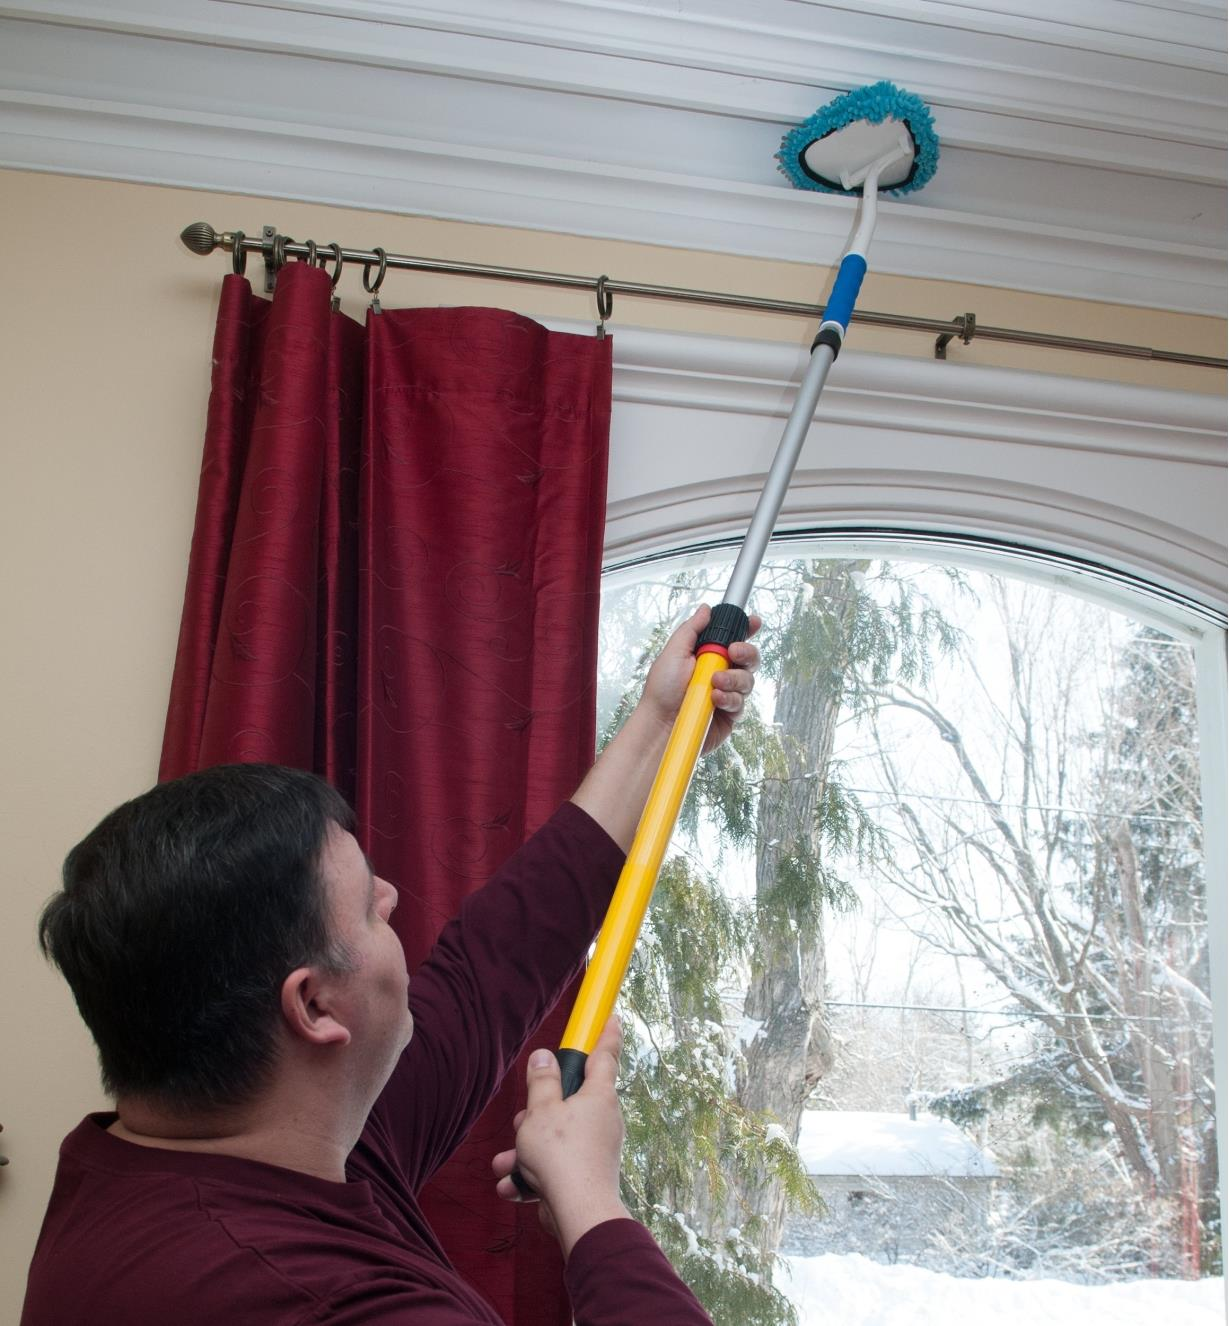 Using the 2' to 3 1/2' Extension Pole and a duster attachment to clean crown molding